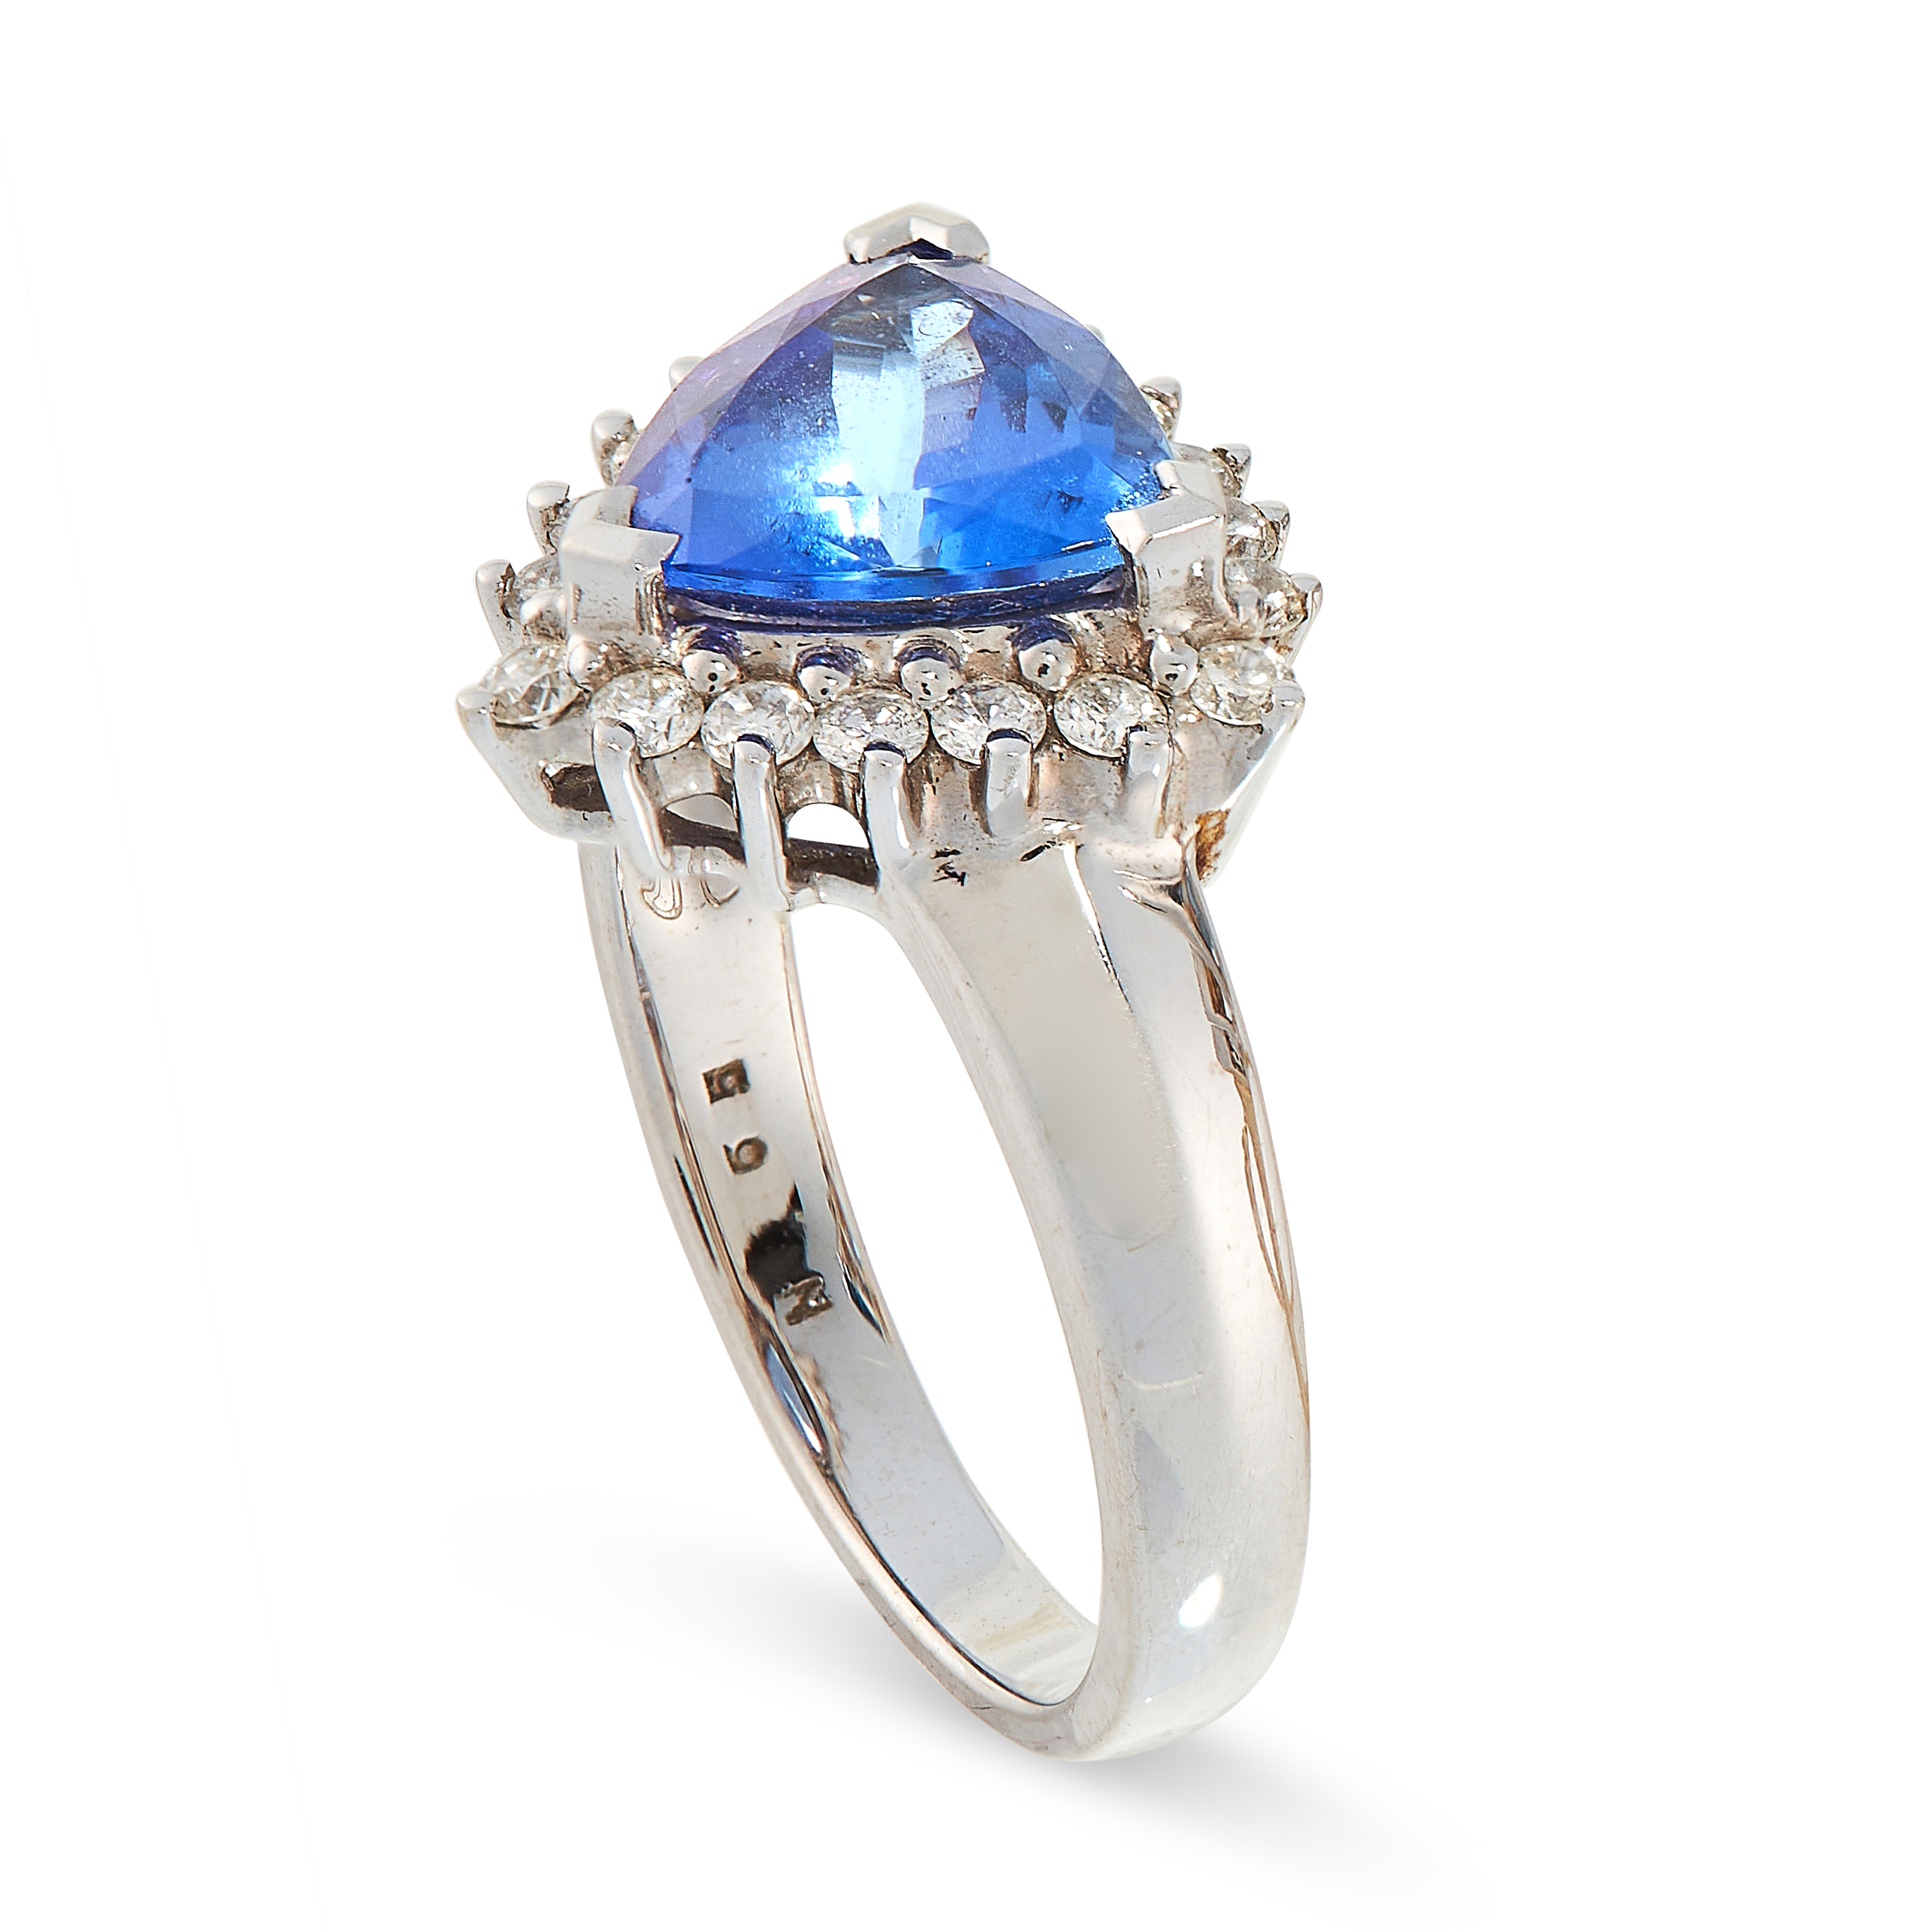 TANZANITE AND DIAMOND RING comprising of a trillion cut tanzanite of 1.92 carats in a border of - Image 2 of 2